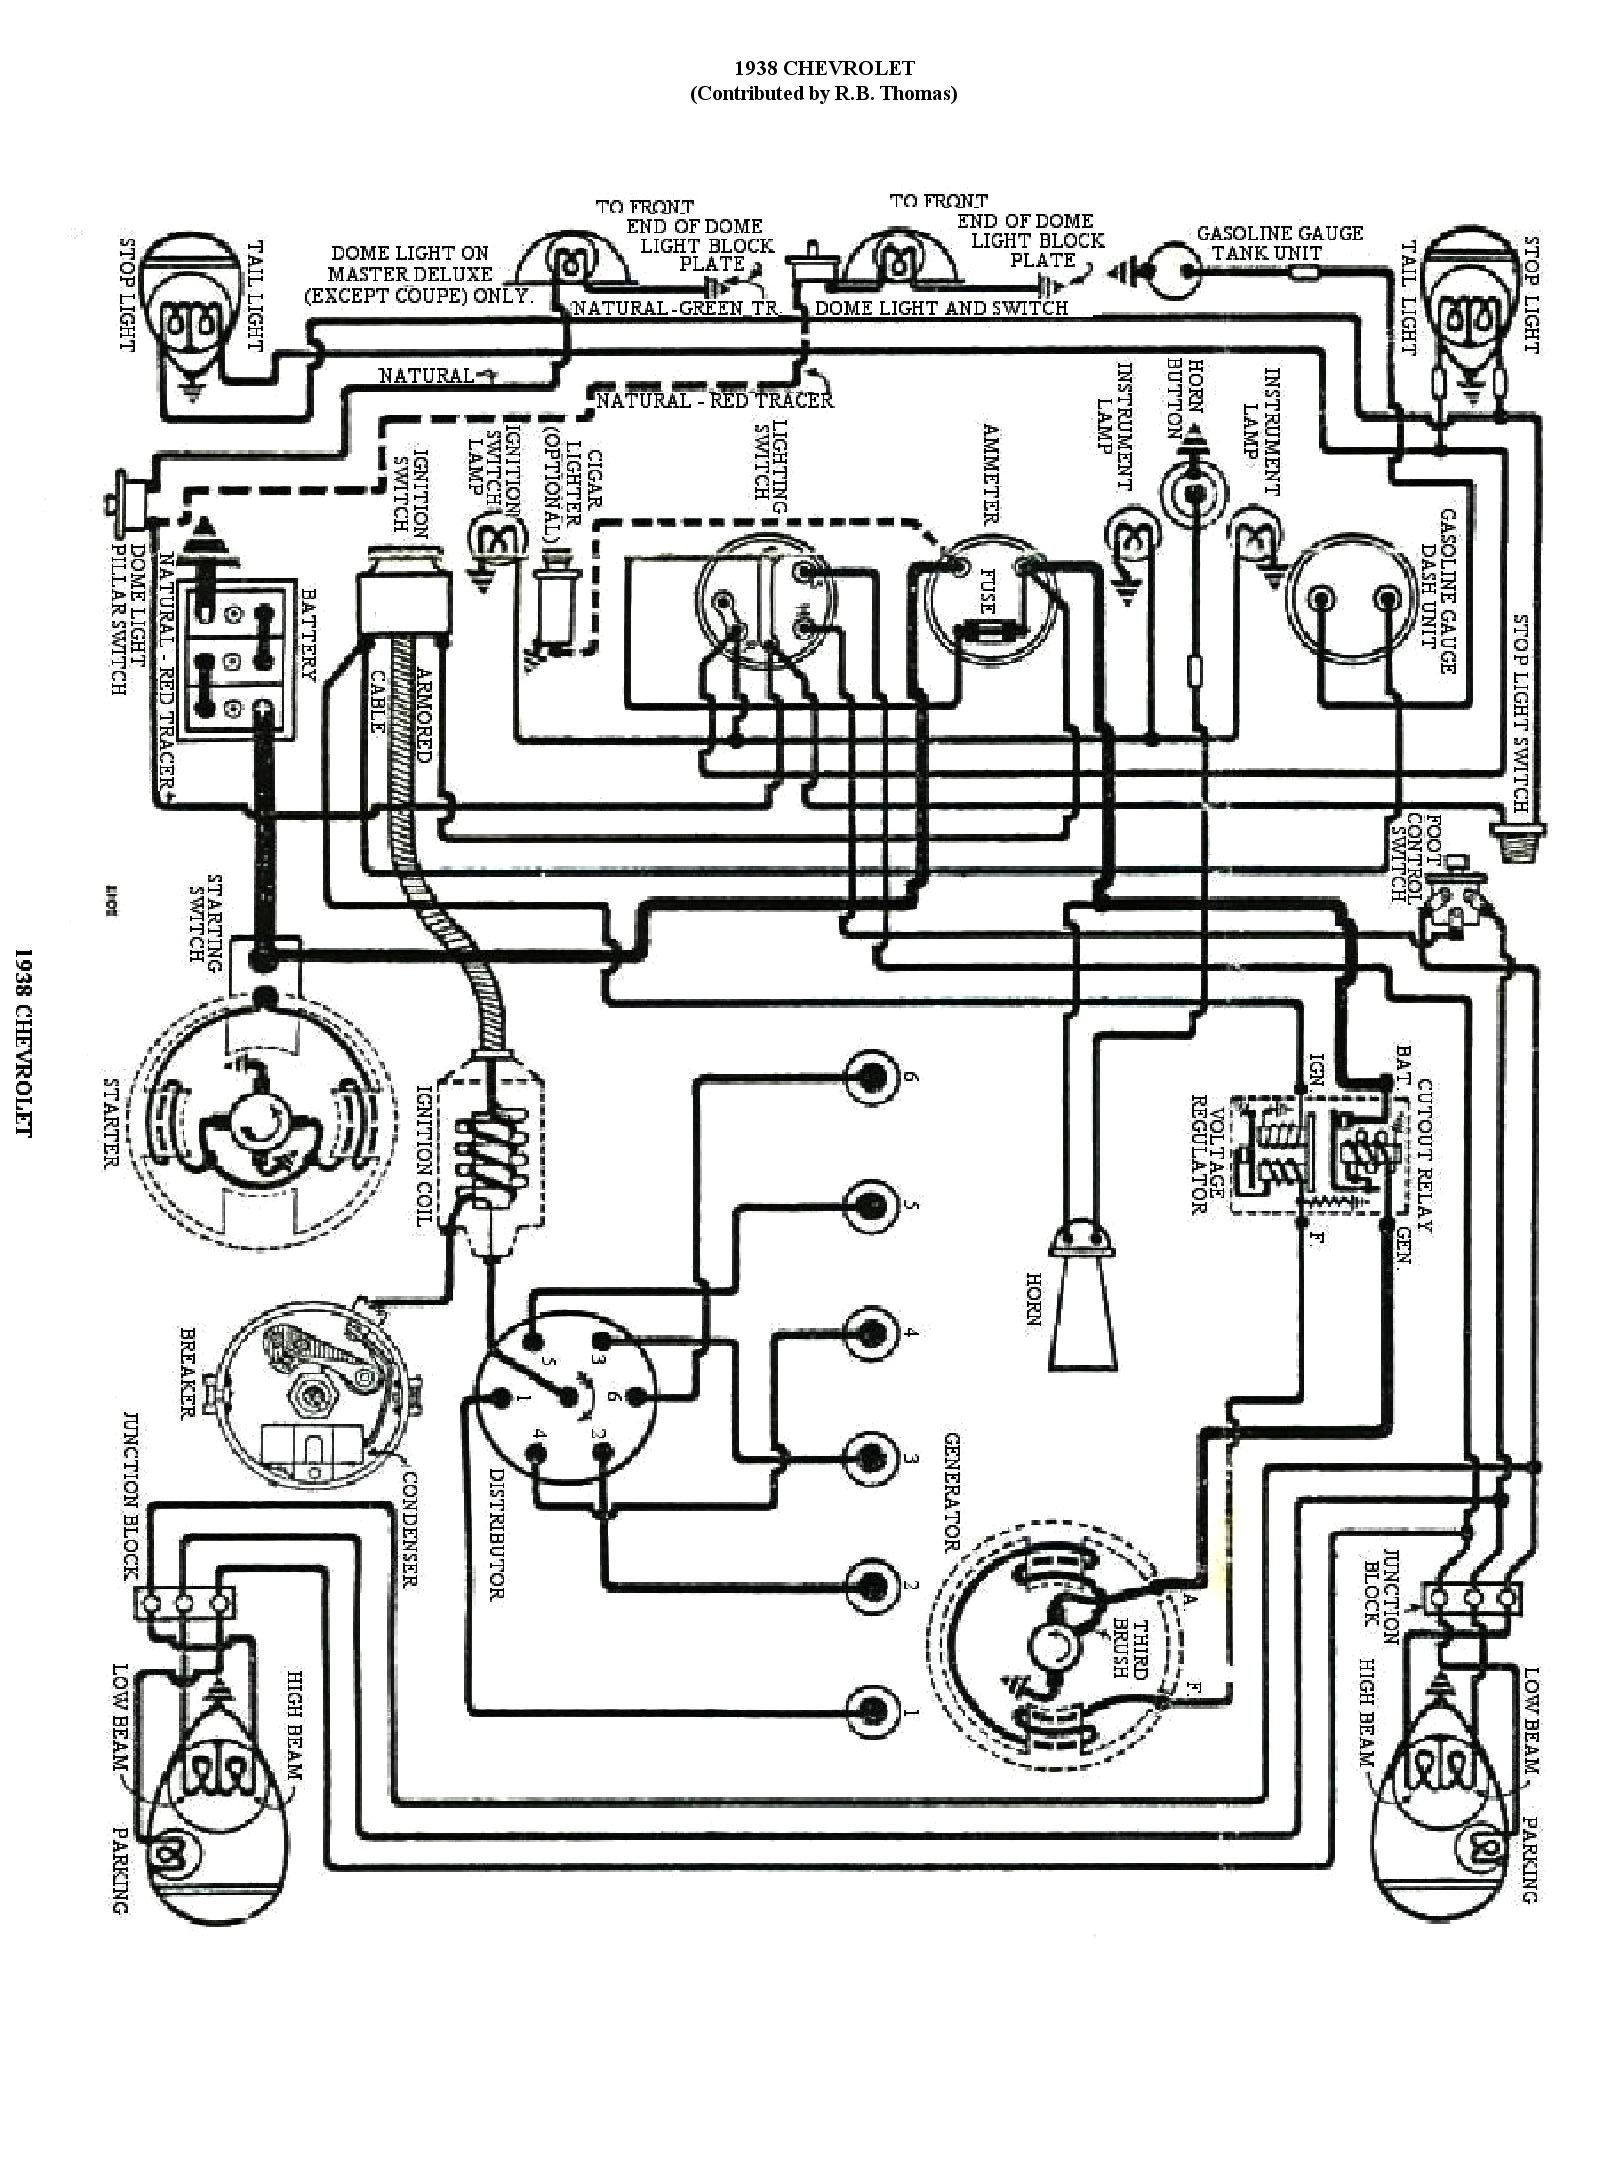 38wiring chevy wiring diagrams 6 volt universal wiring harness at creativeand.co